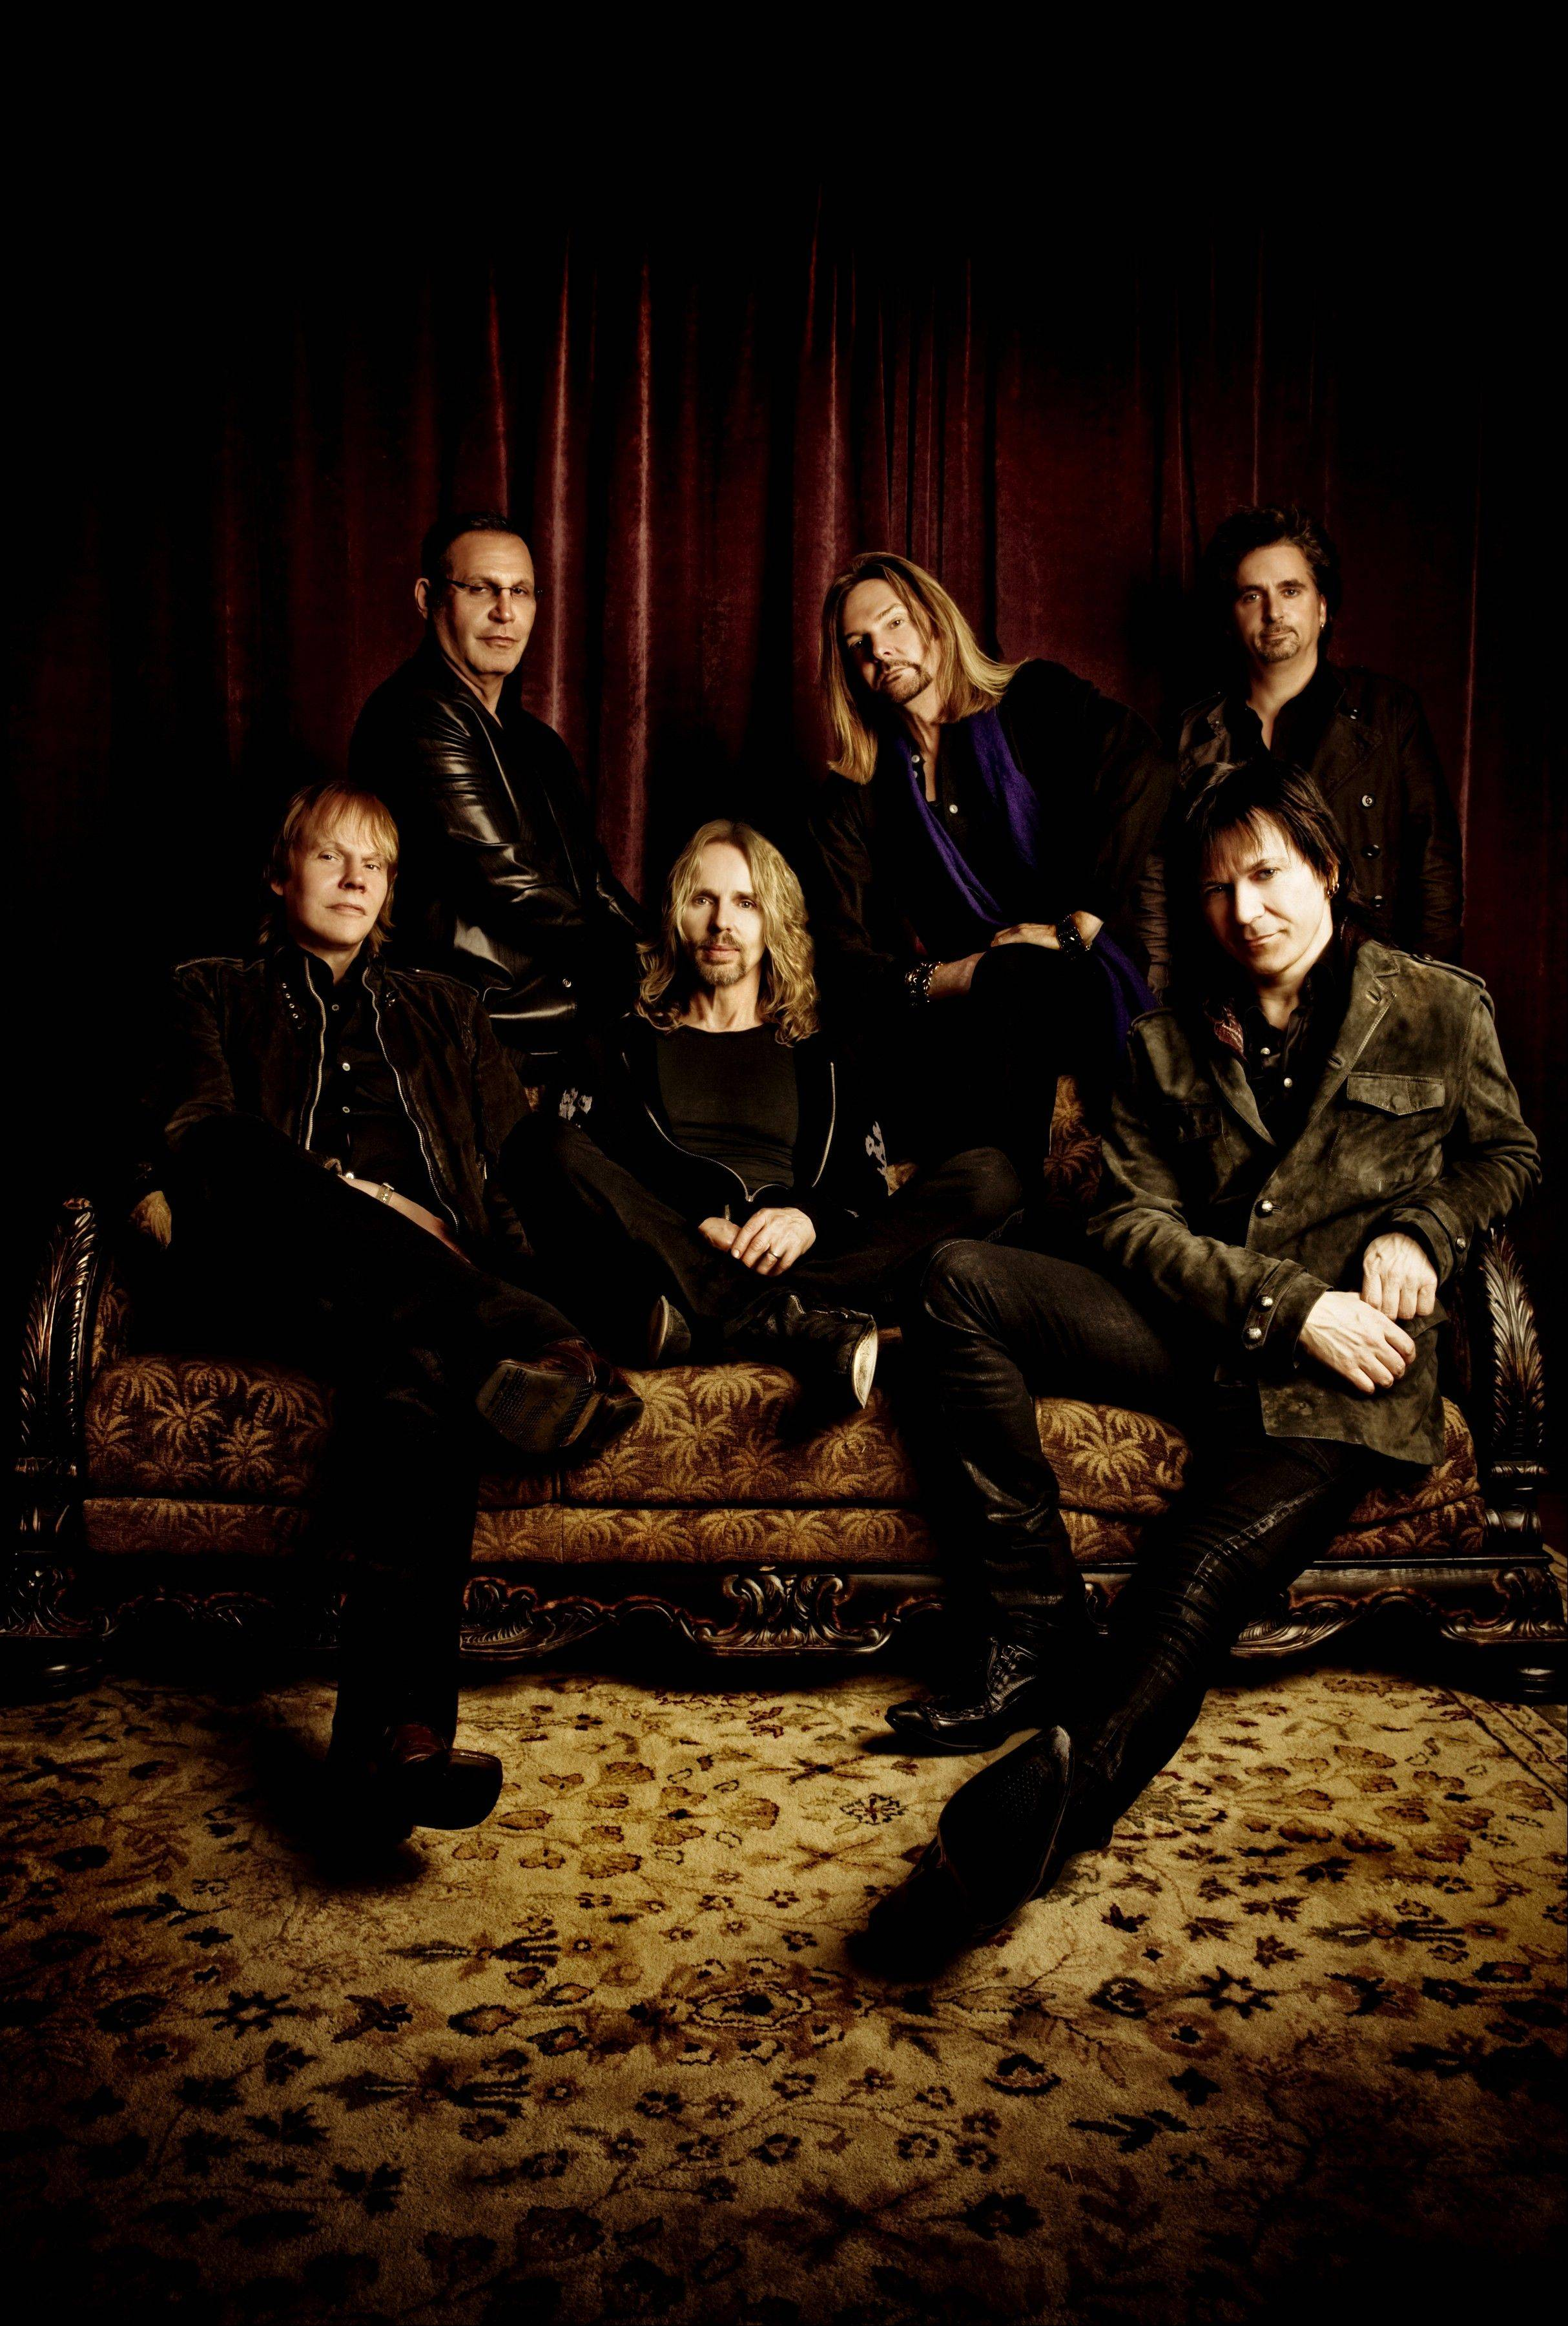 The rock band Styx performs at the Genesee Theatre on Waukegan on Sunday, Dec. 29.